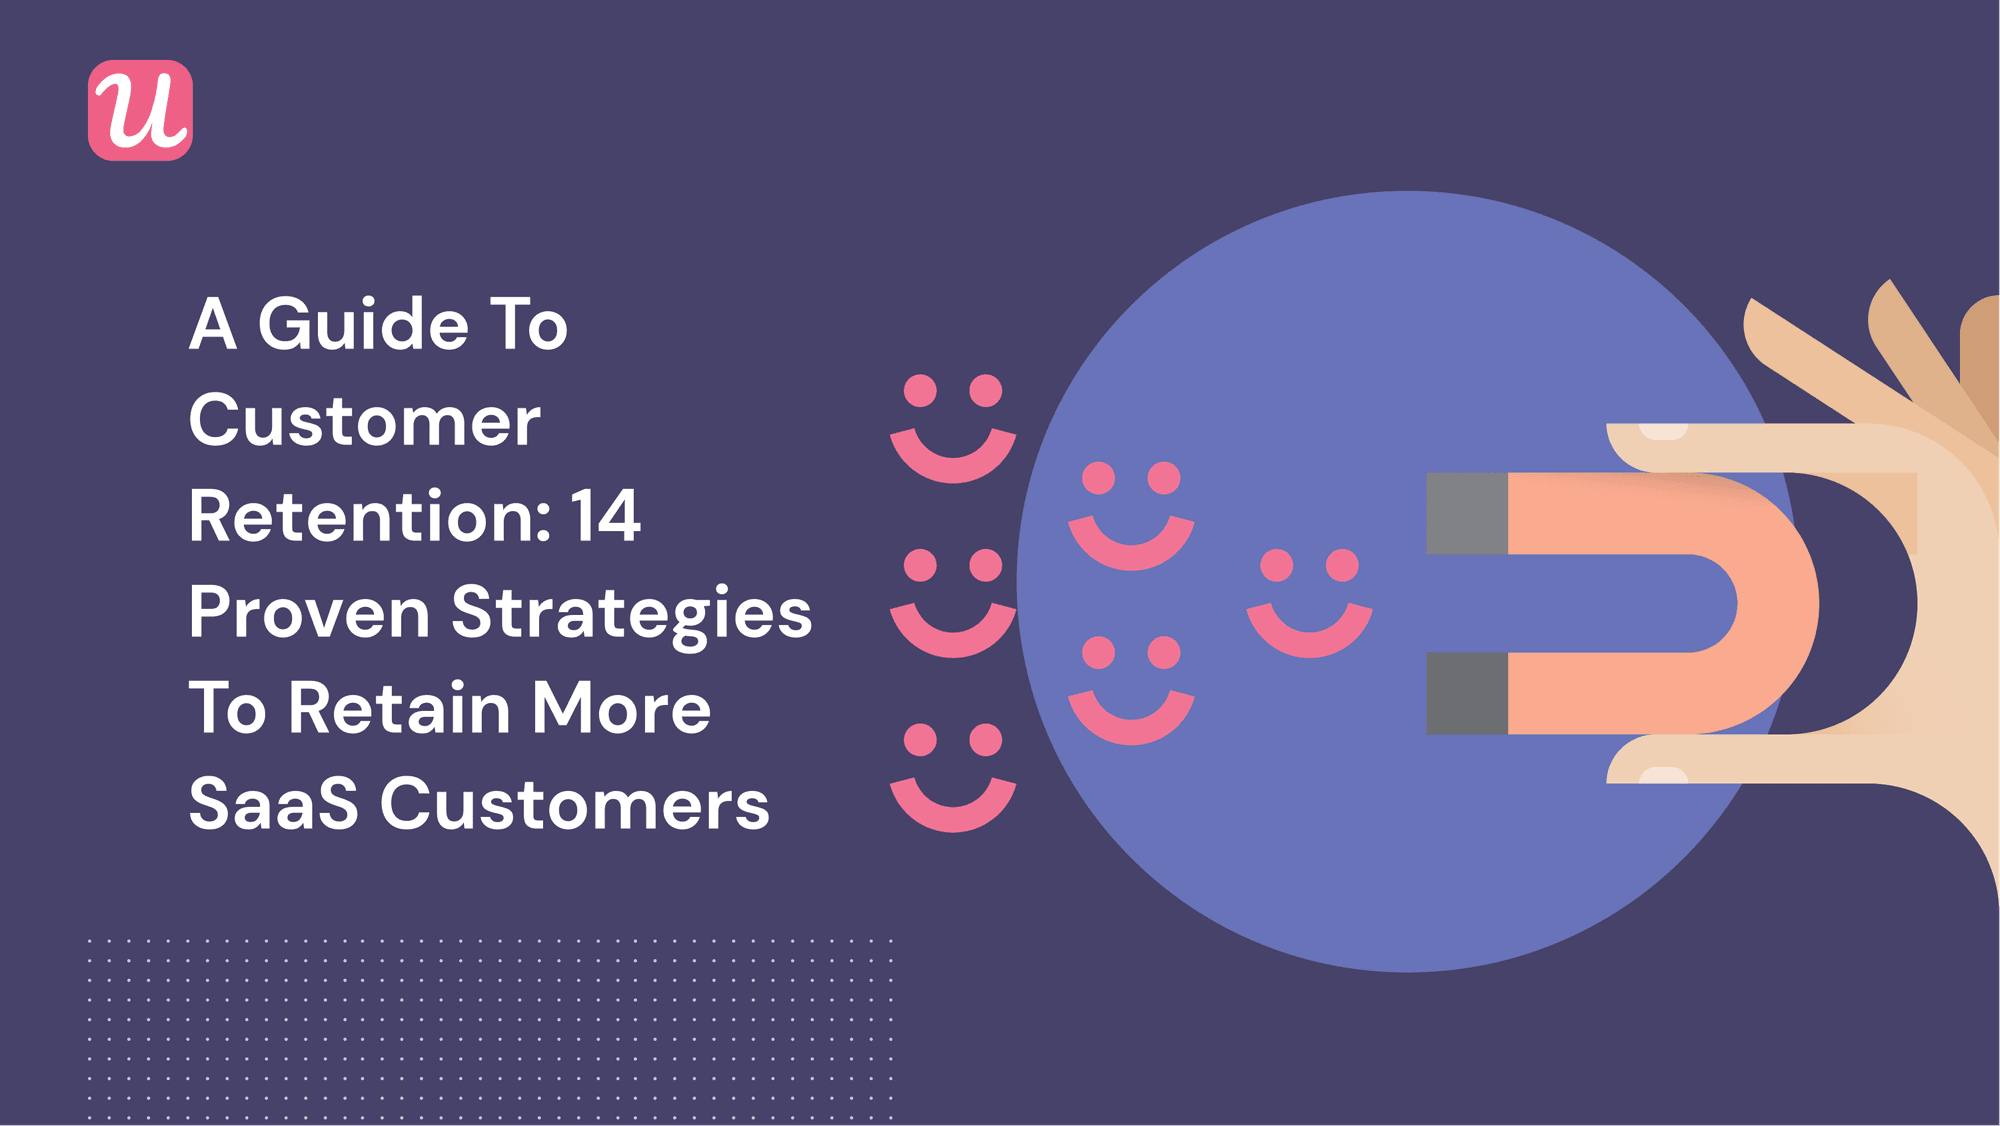 A Guide to Customer Retention: 14 Proven Strategies to Retain More SaaS Customers